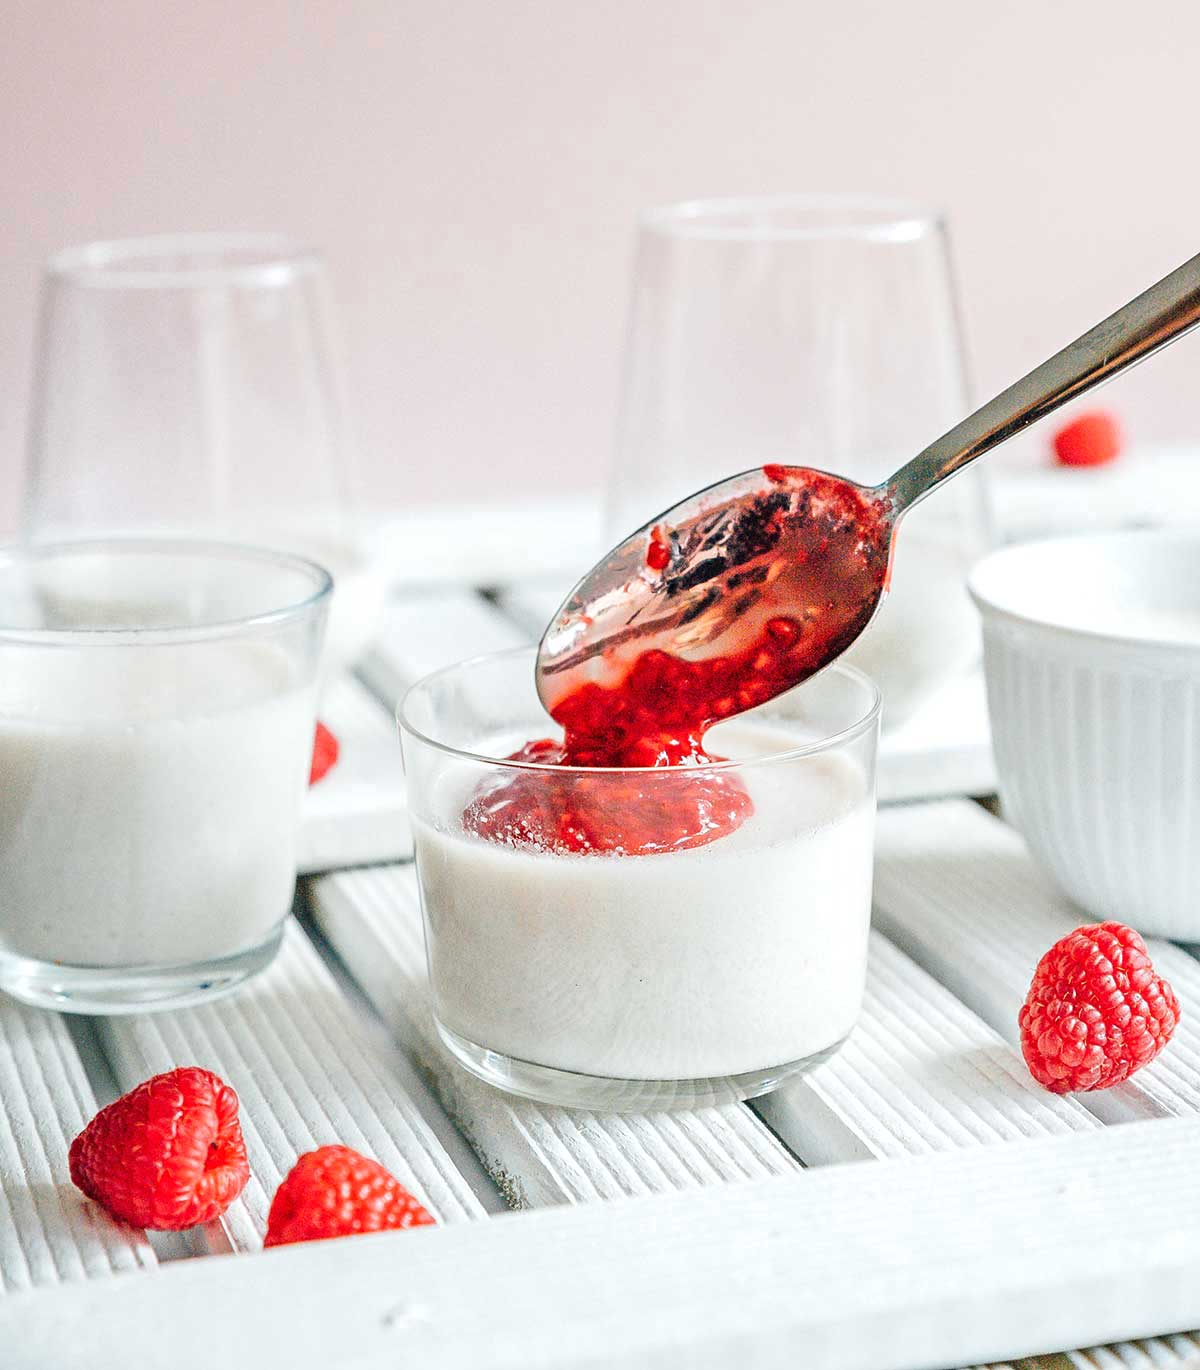 Dropping a spoonful of raspberry topping onto a serving of panna cotta in a cup